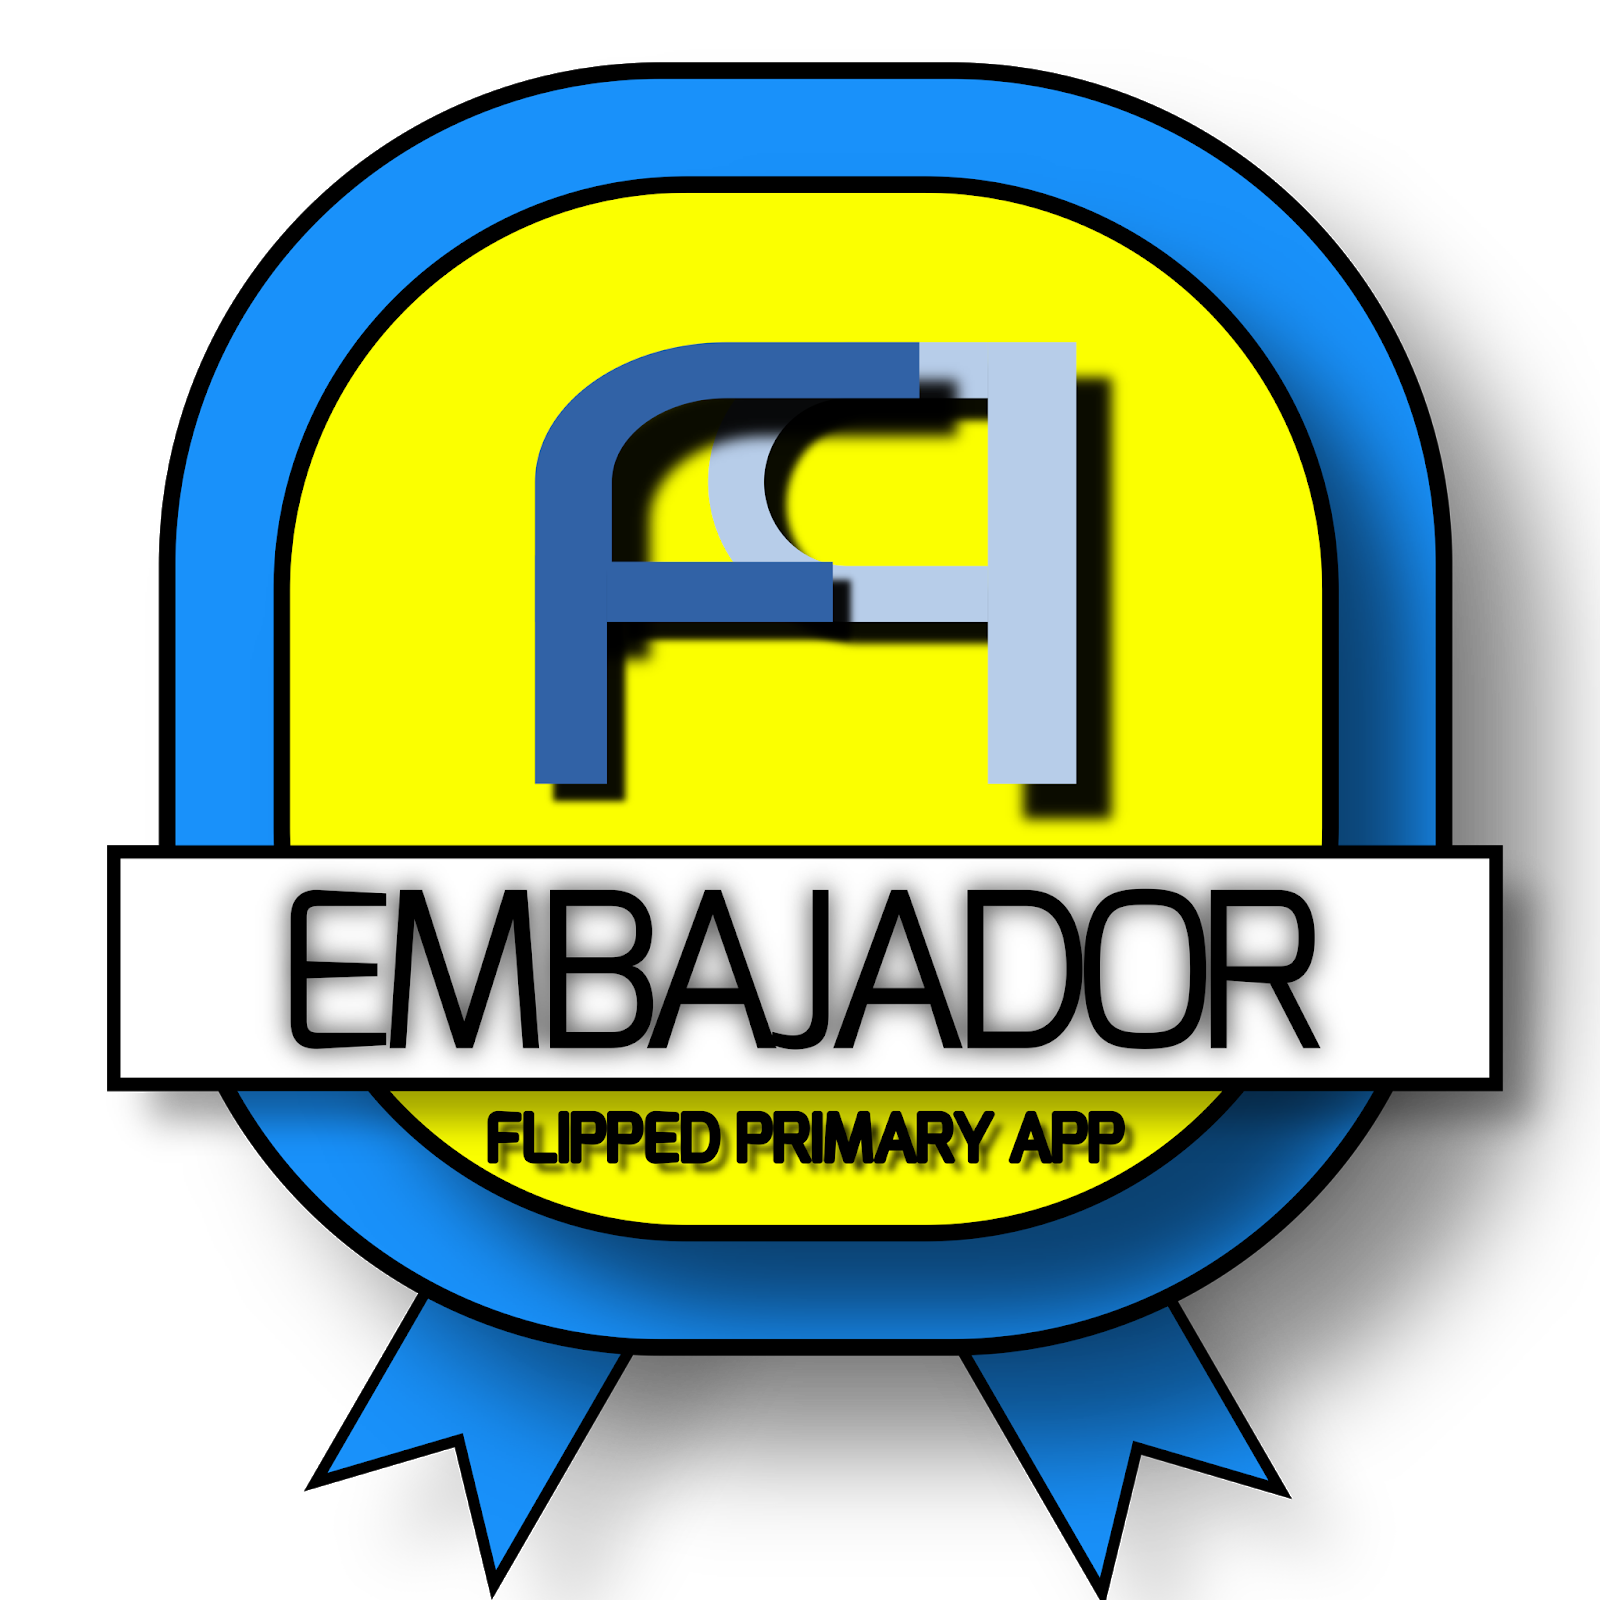 Embajador Flipped Primary APP